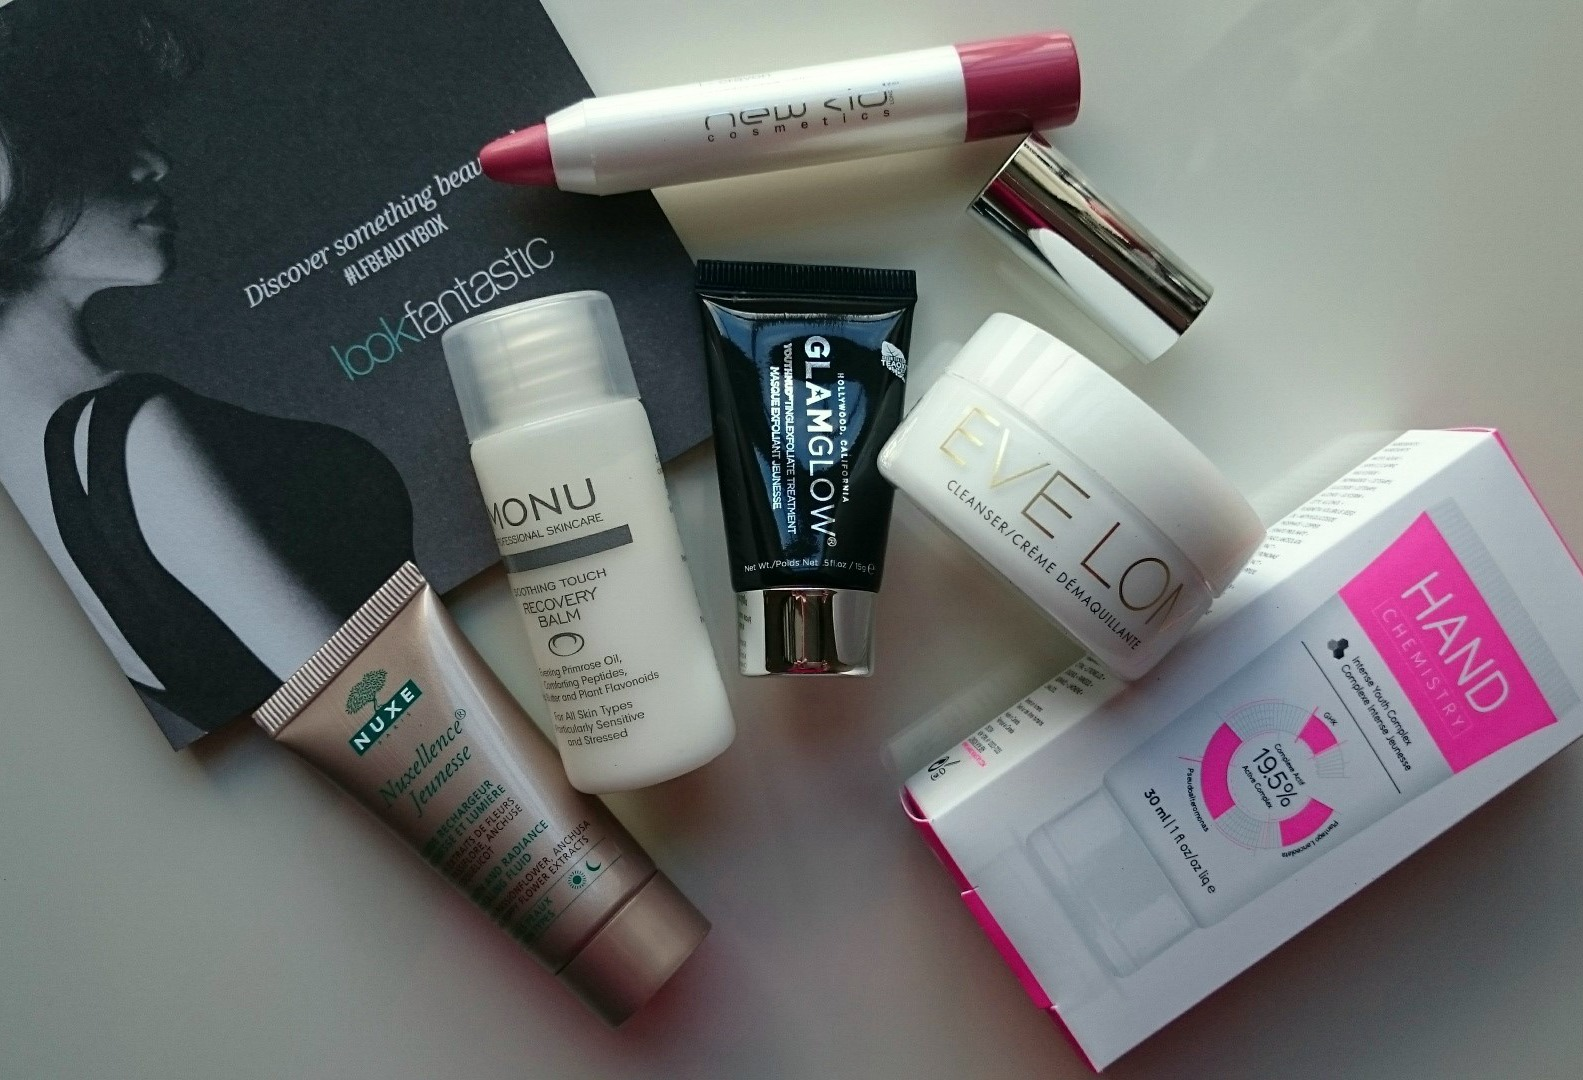 Look fantastic beauty box November